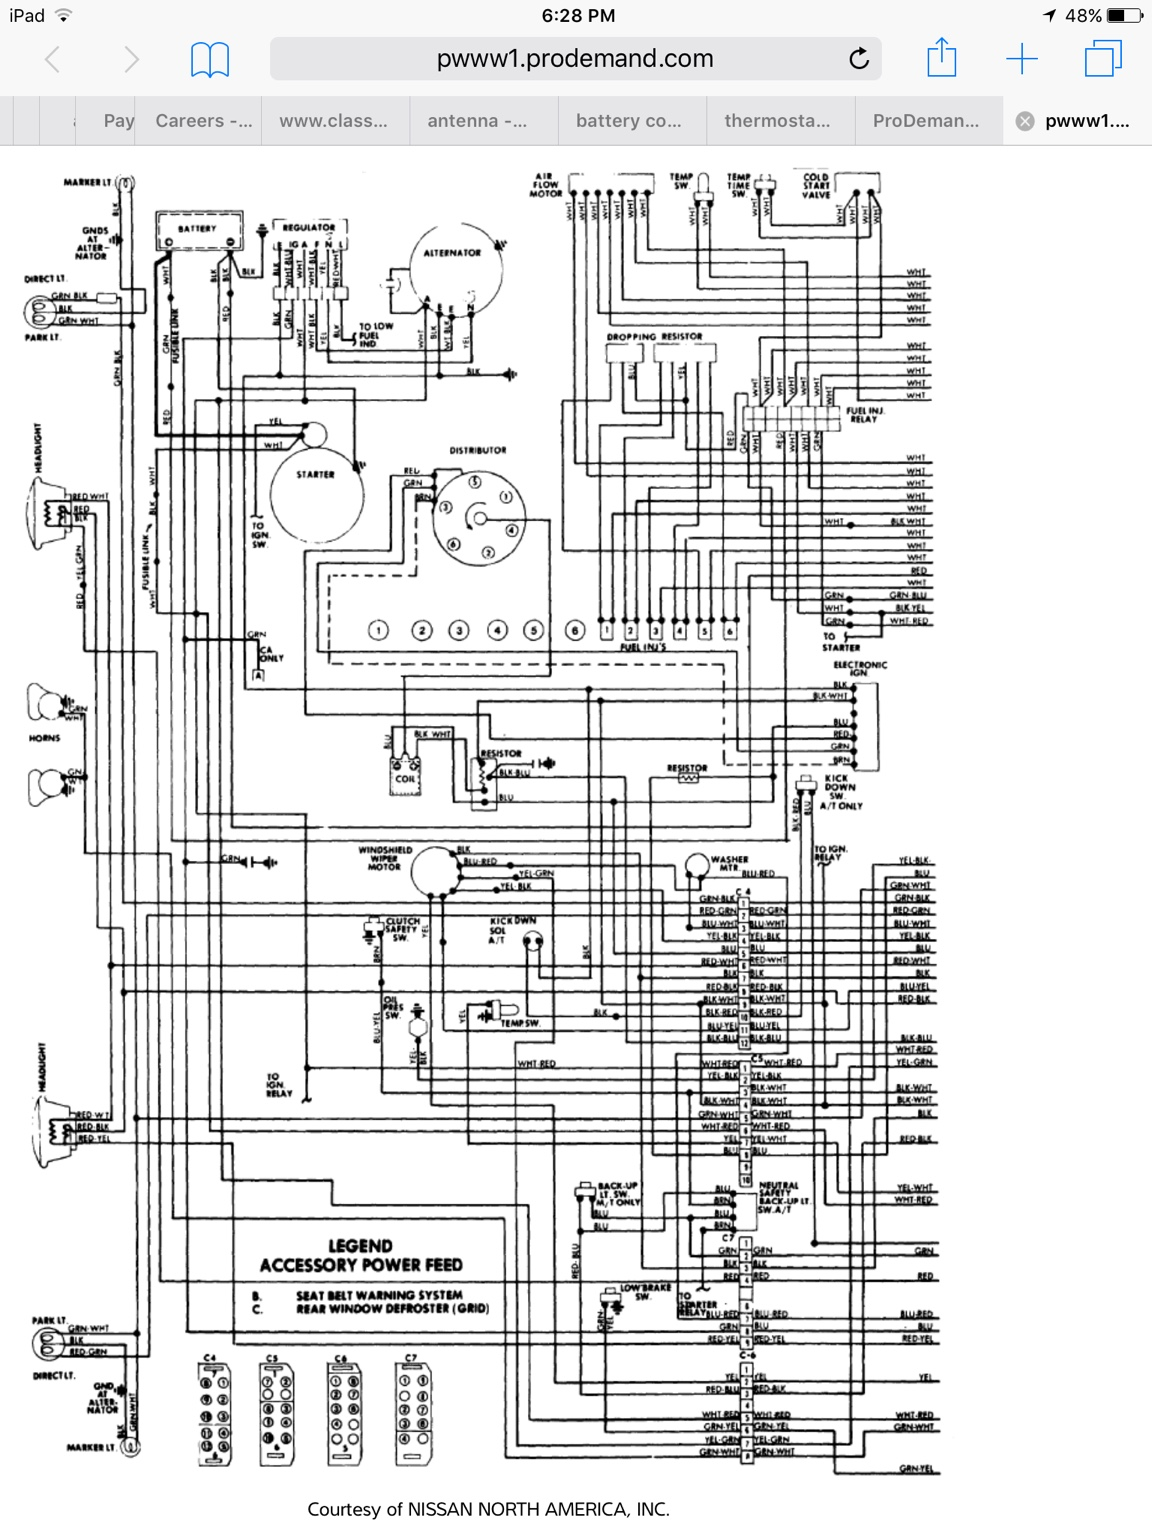 North American Electric Wiring Diagram 6 - House Wiring Diagram ...